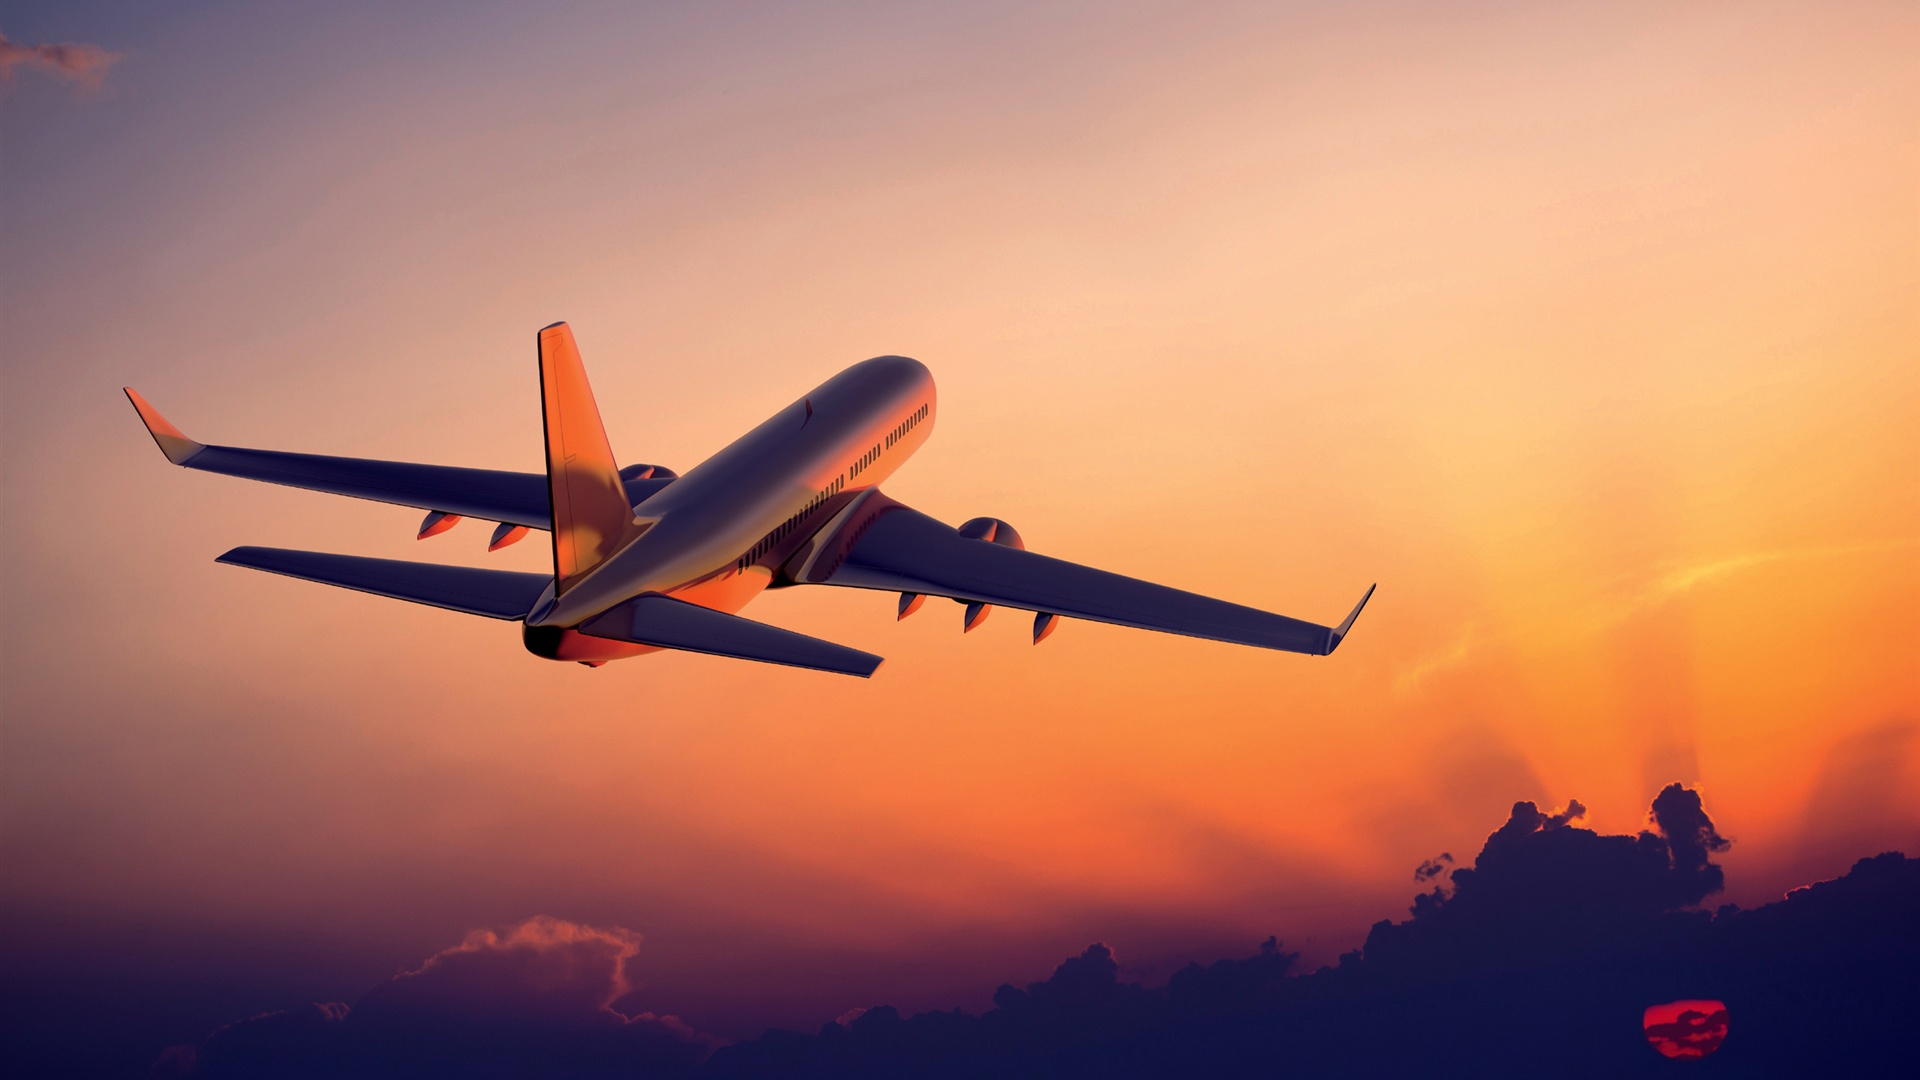 The plane flying at sunset airliner